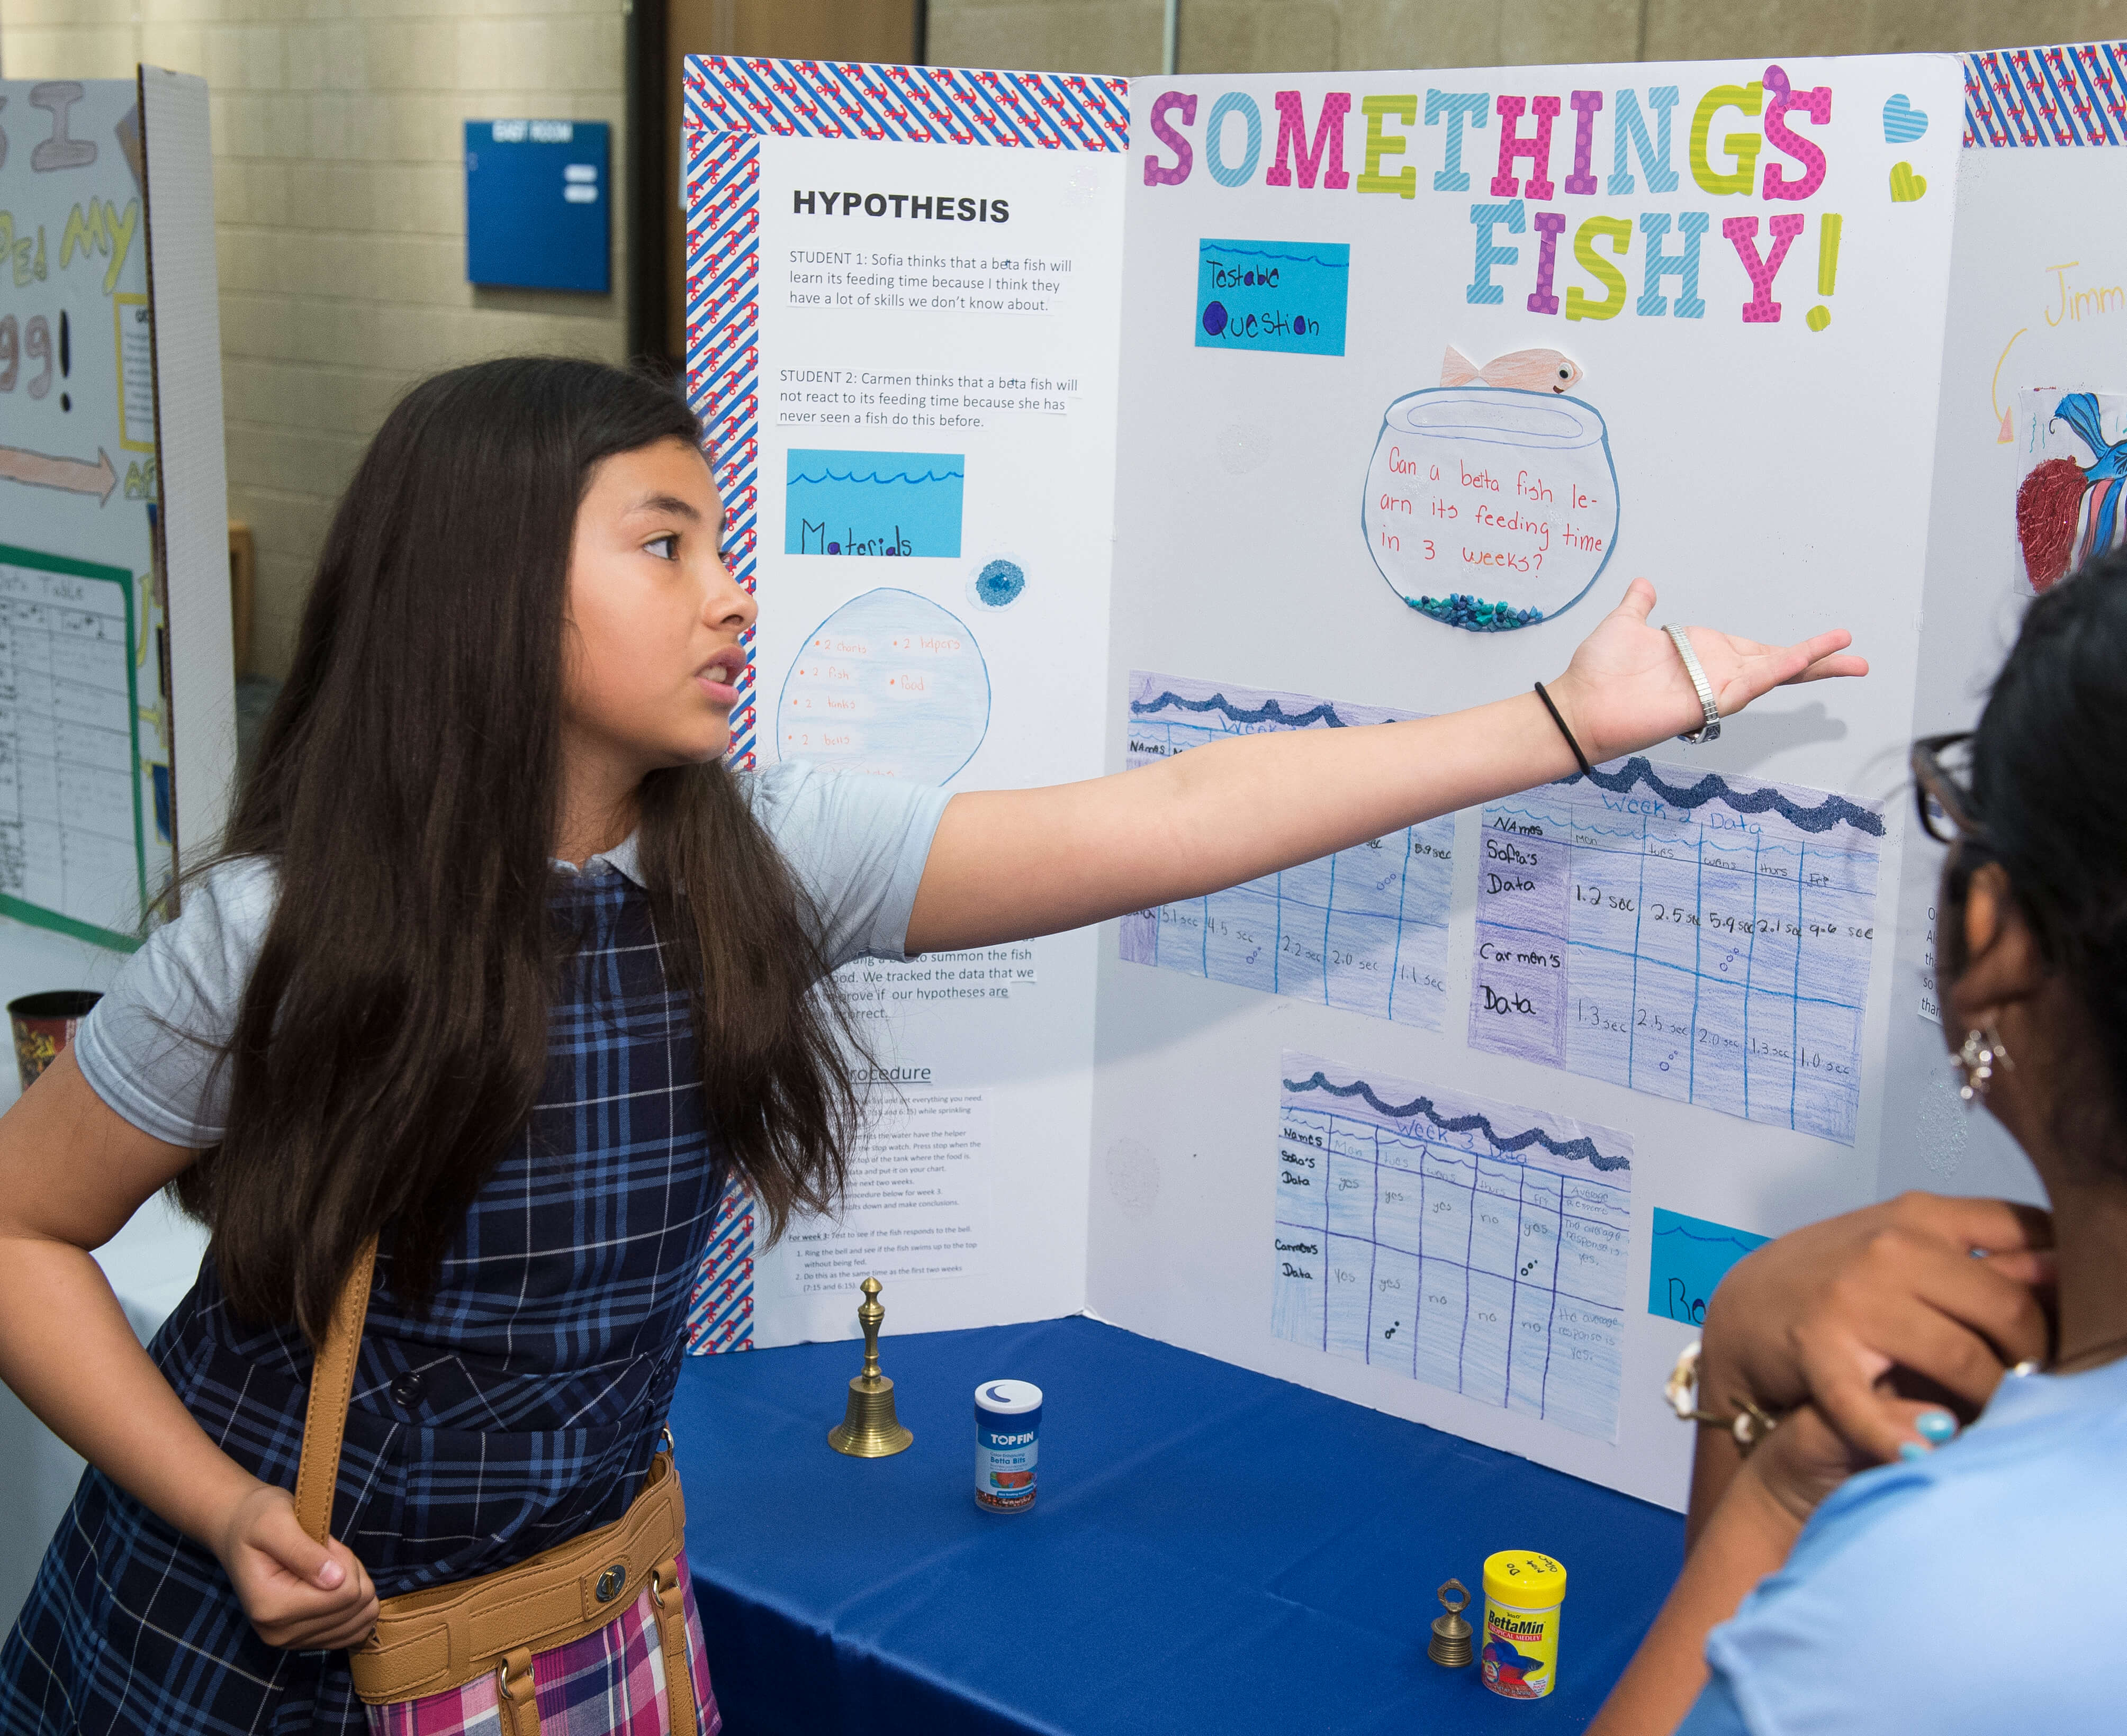 Girls present research at science fair.